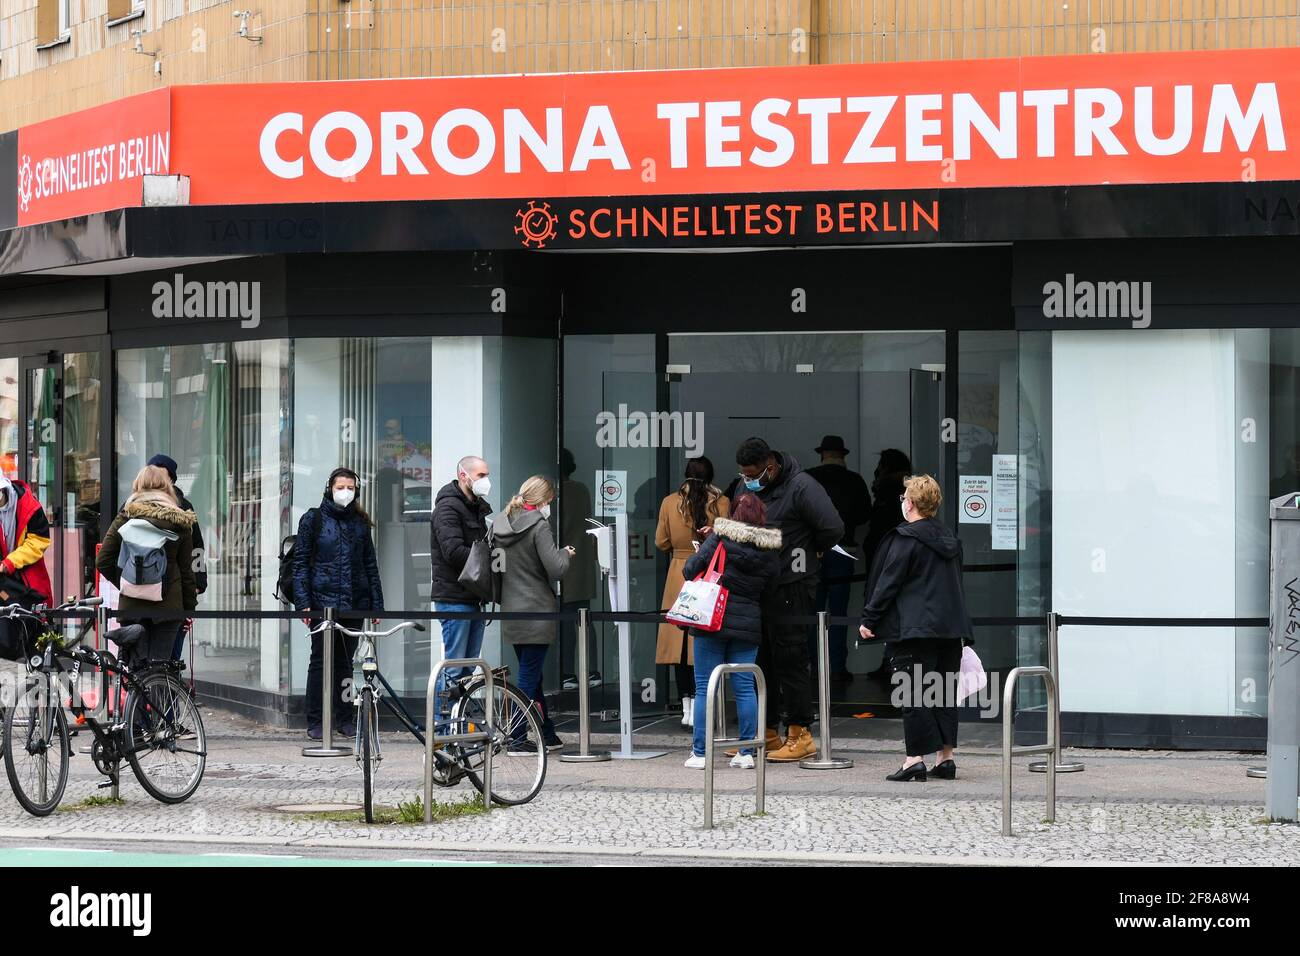 Berlin, Germany. 12th Apr, 2021. People wait for COVID-19 tests outside a test site in Berlin, capital of Germany, on April 12, 2021. More than three million COVID-19 infections have been registered in Germany on Monday since the outbreak of the pandemic, according to the Robert Koch Institute (RKI). Credit: Stefan Zeitz/Xinhua/Alamy Live News Stock Photo